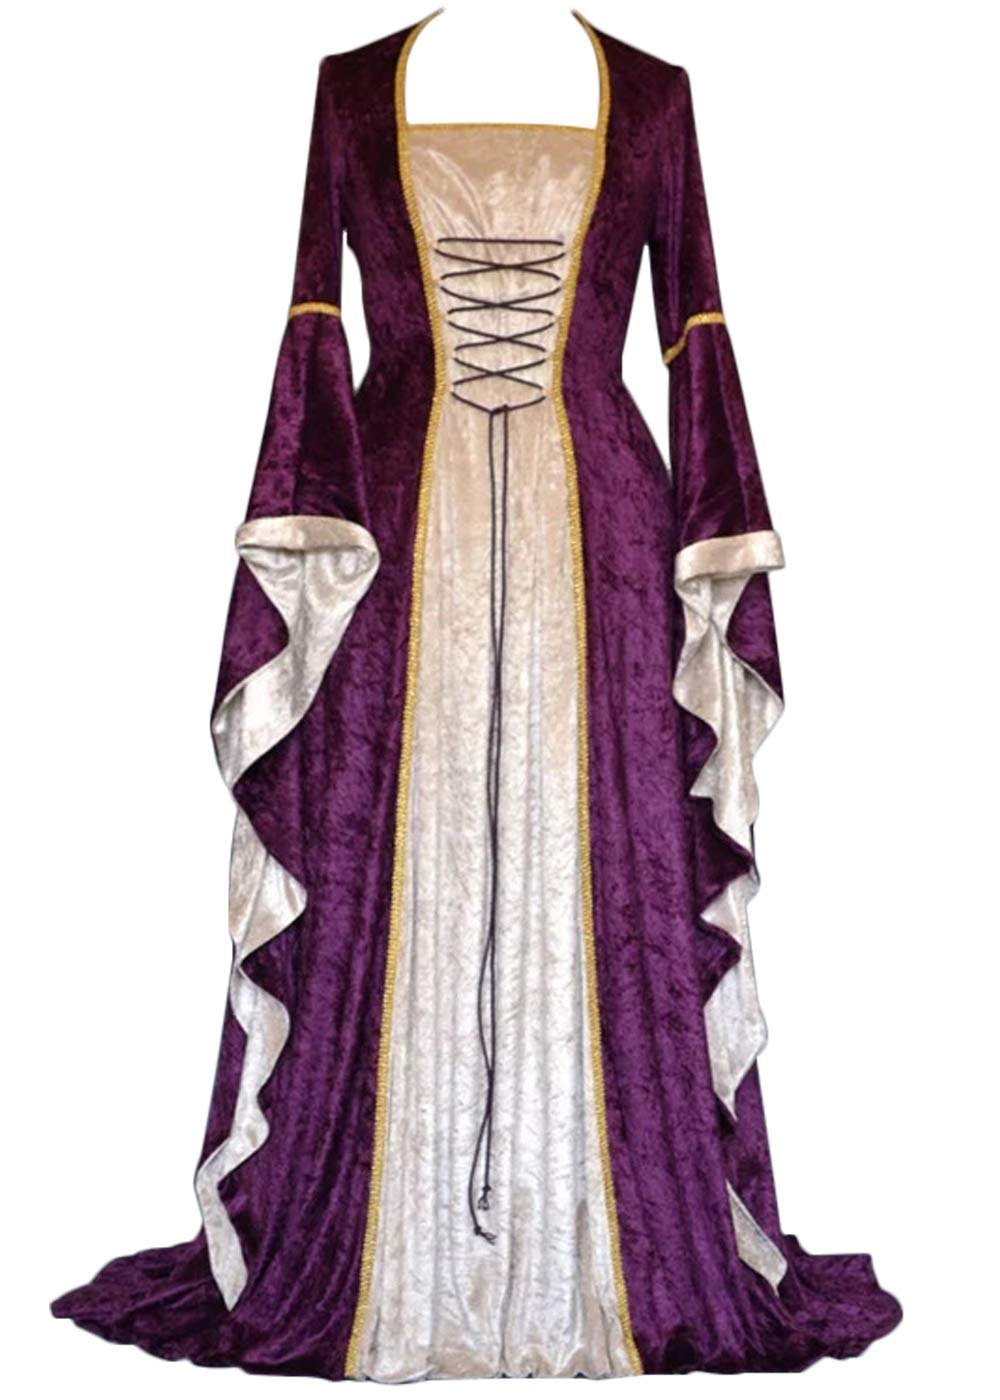 YEAXLUD Womens Renaissance Medieval Costume Dress Lace up Irish Over Long Dresses Cosplay Retro Gown S-5XL (L, Purple)